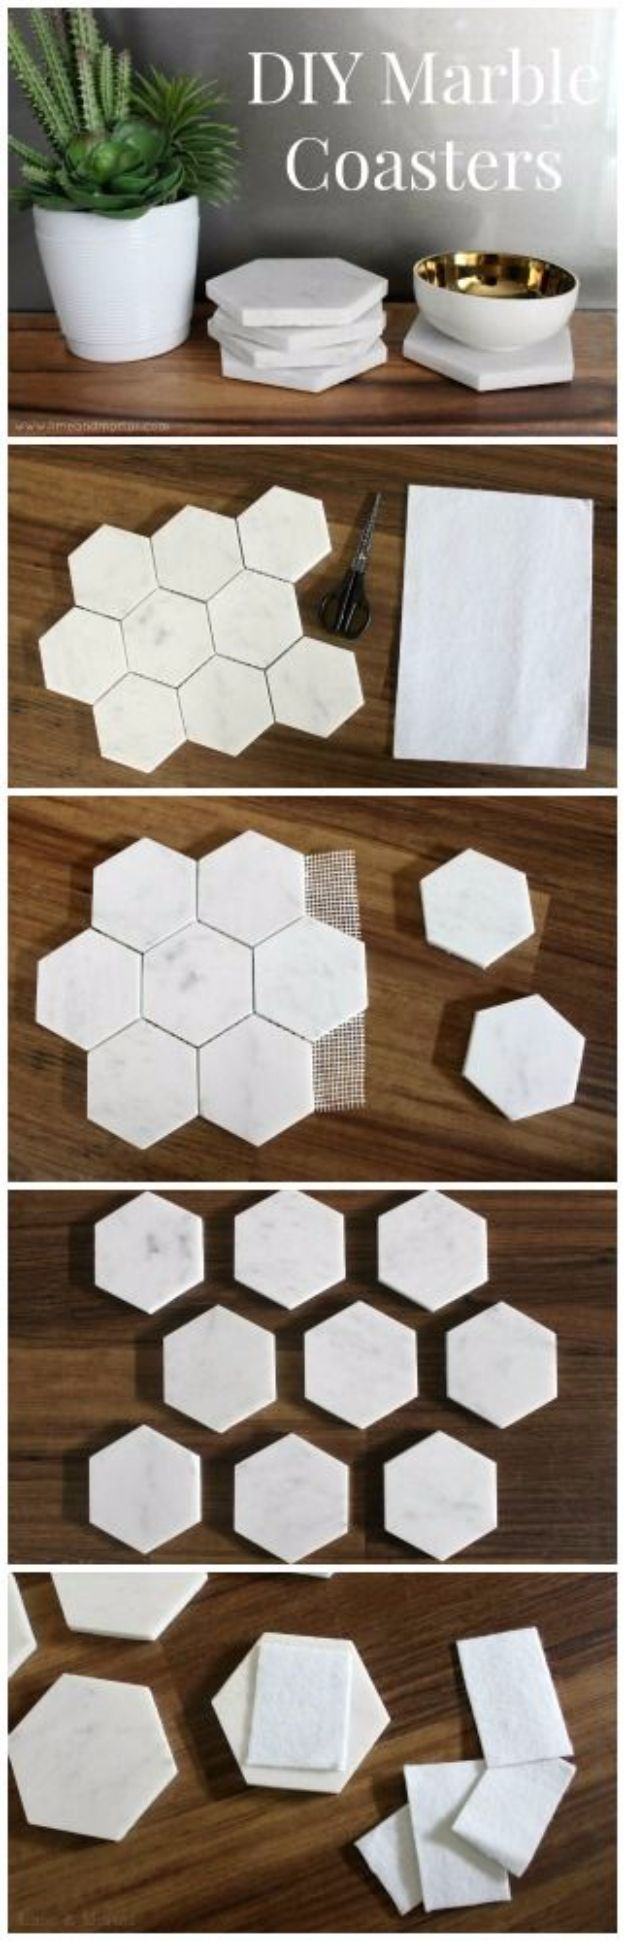 DIY Coasters - DIY Marble Coasters - Best Quick DIY Gifts and Home Decor - Easy Step by Step Tutorials for DIY Coaster Projects - Mod Podge, Tile, Painted, Photo and Sewing Projects - Cool Christmas Presents for Him and Her - DIY Projects and Crafts by DIY Joy http://diyjoy.com/diy-coasters